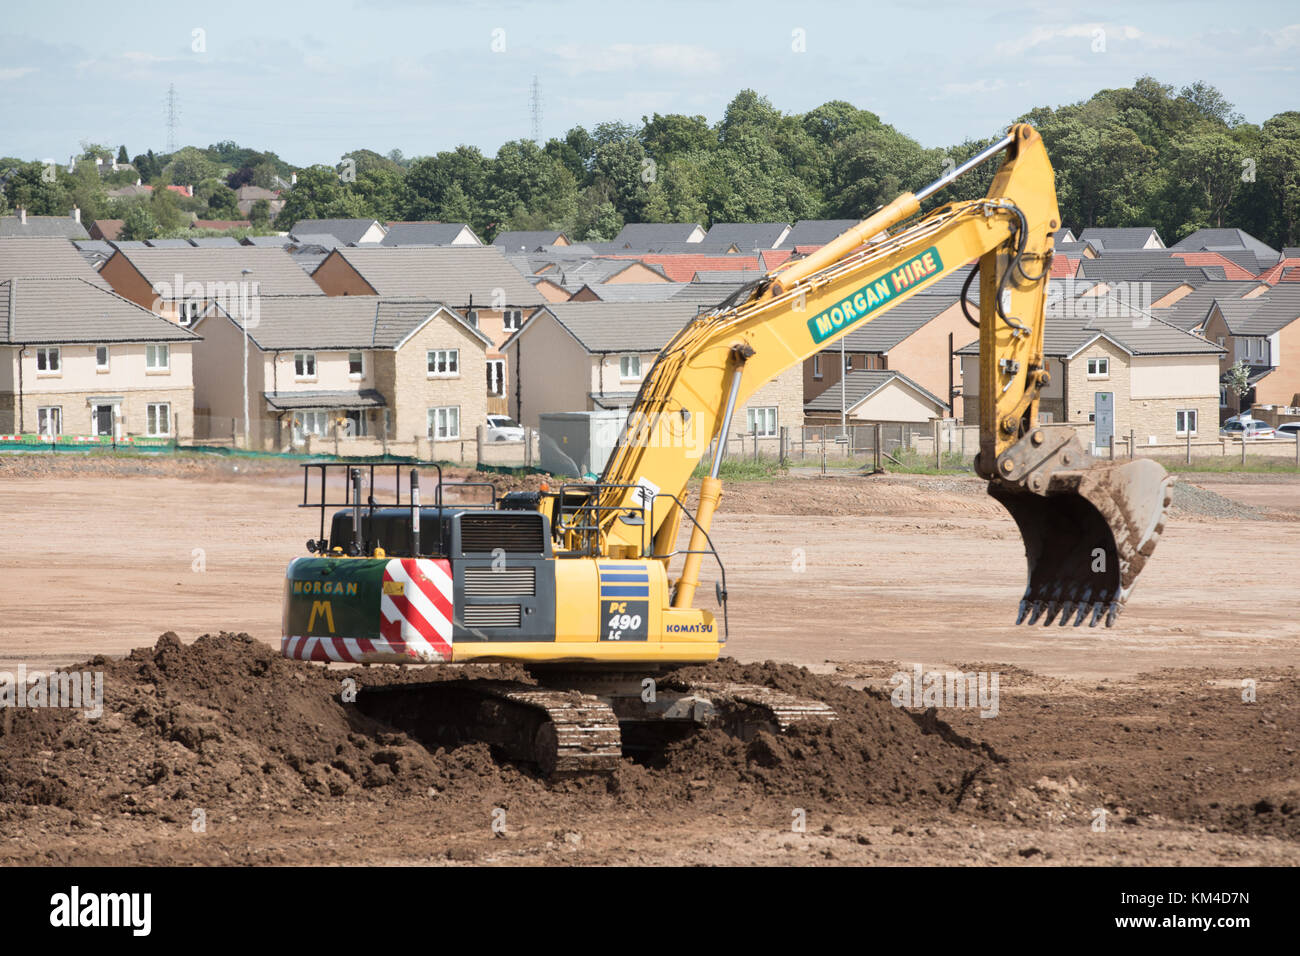 Brownfield photos brownfield images alamy for Construction maison industrielle